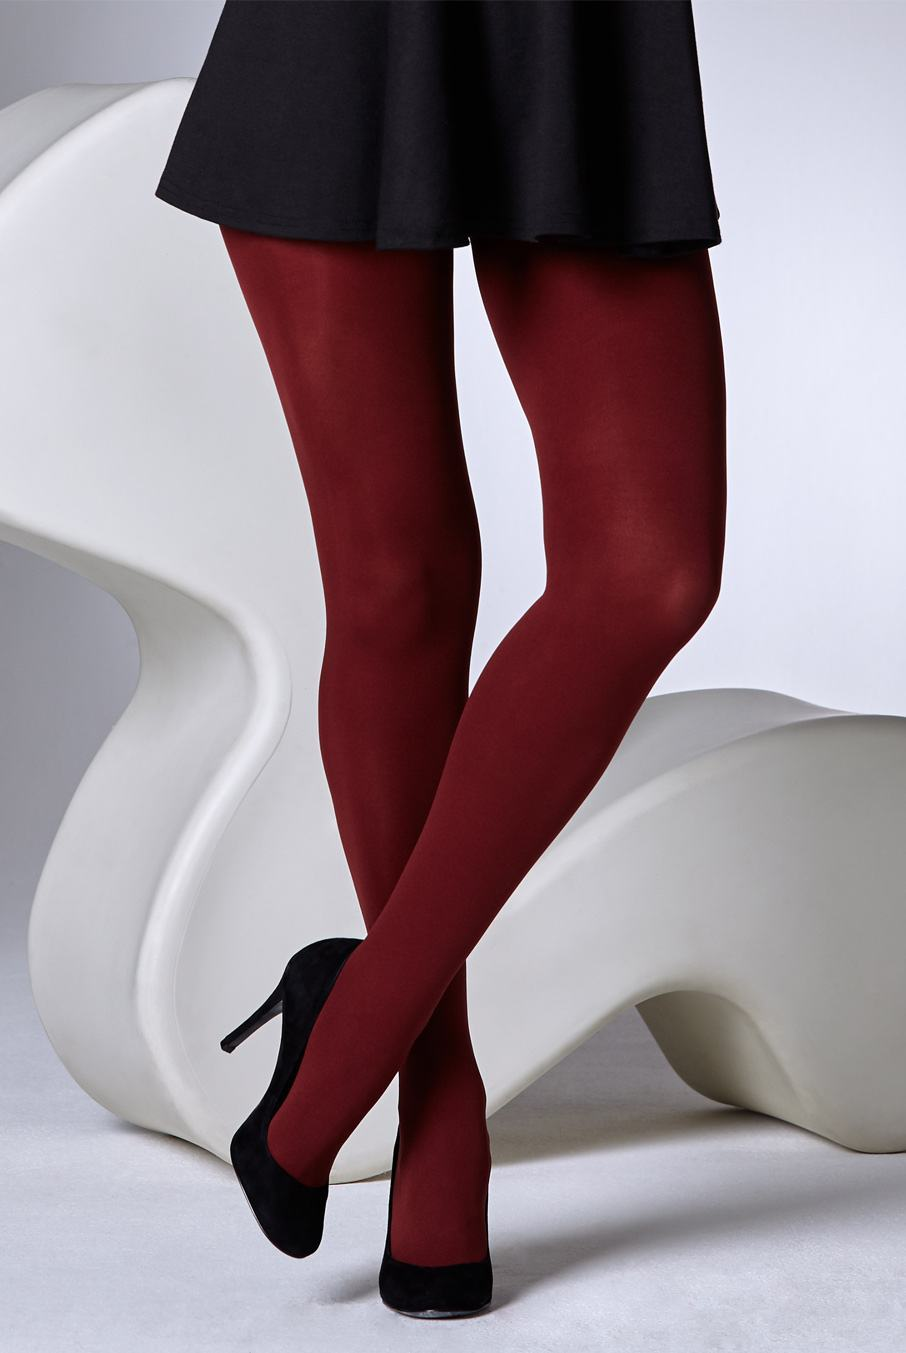 Burgundy Tights - a blog post by Lacey Faeh, a Washington DC Fashion Blogger & consultant, who shares her daily outfits, style inspiration and design ideas.